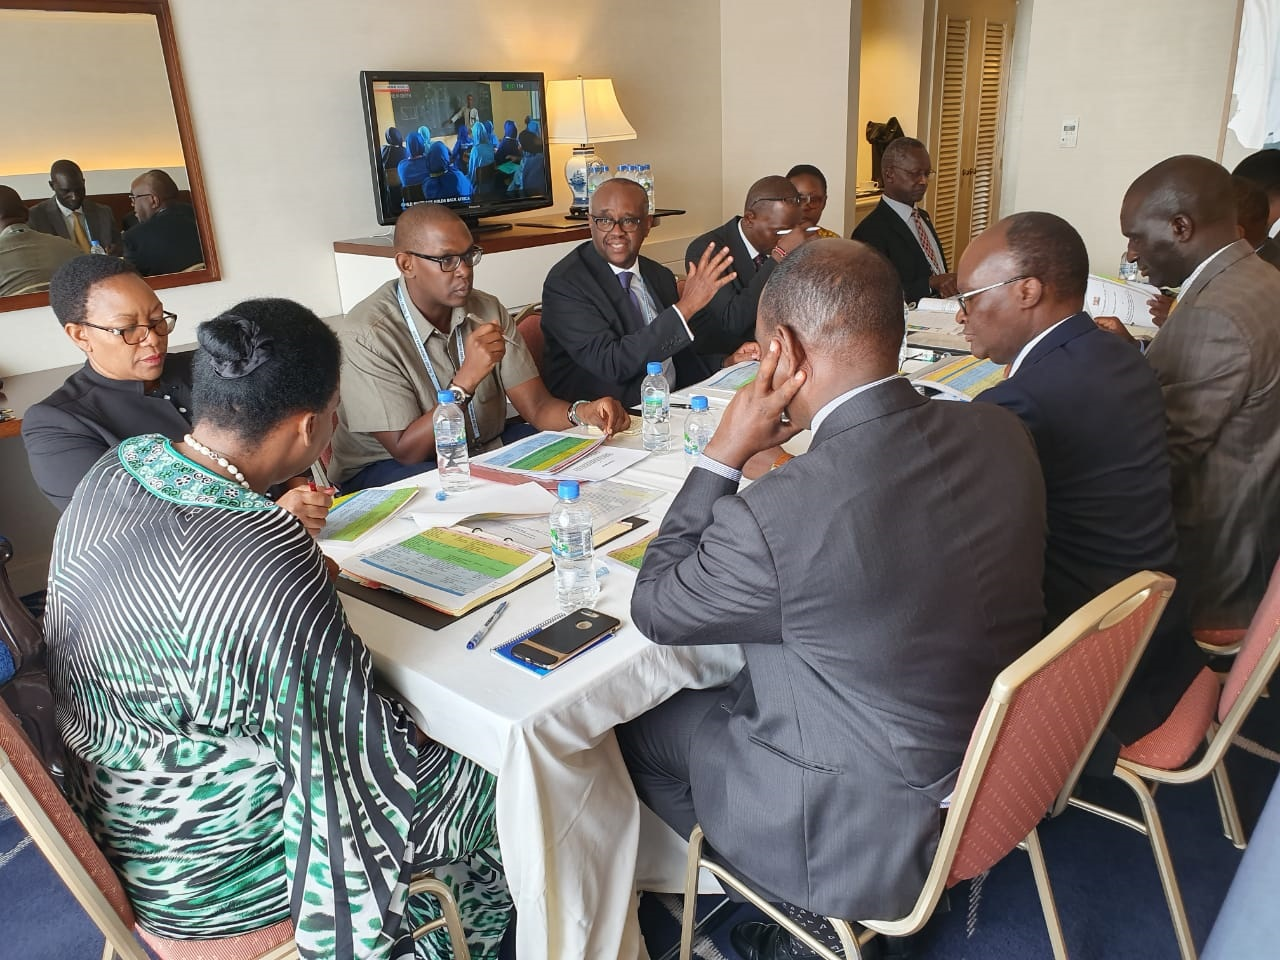 Cabinet Secretaries and the Kenya delegation in Yokohama, Japan hold a final briefing before the commencement of the ministerial segment of TICAD 7. H.E. President Uhuru Kenyatta is leading the Kenya delegation to the TICAD 7. www.businesstoday.co.ke